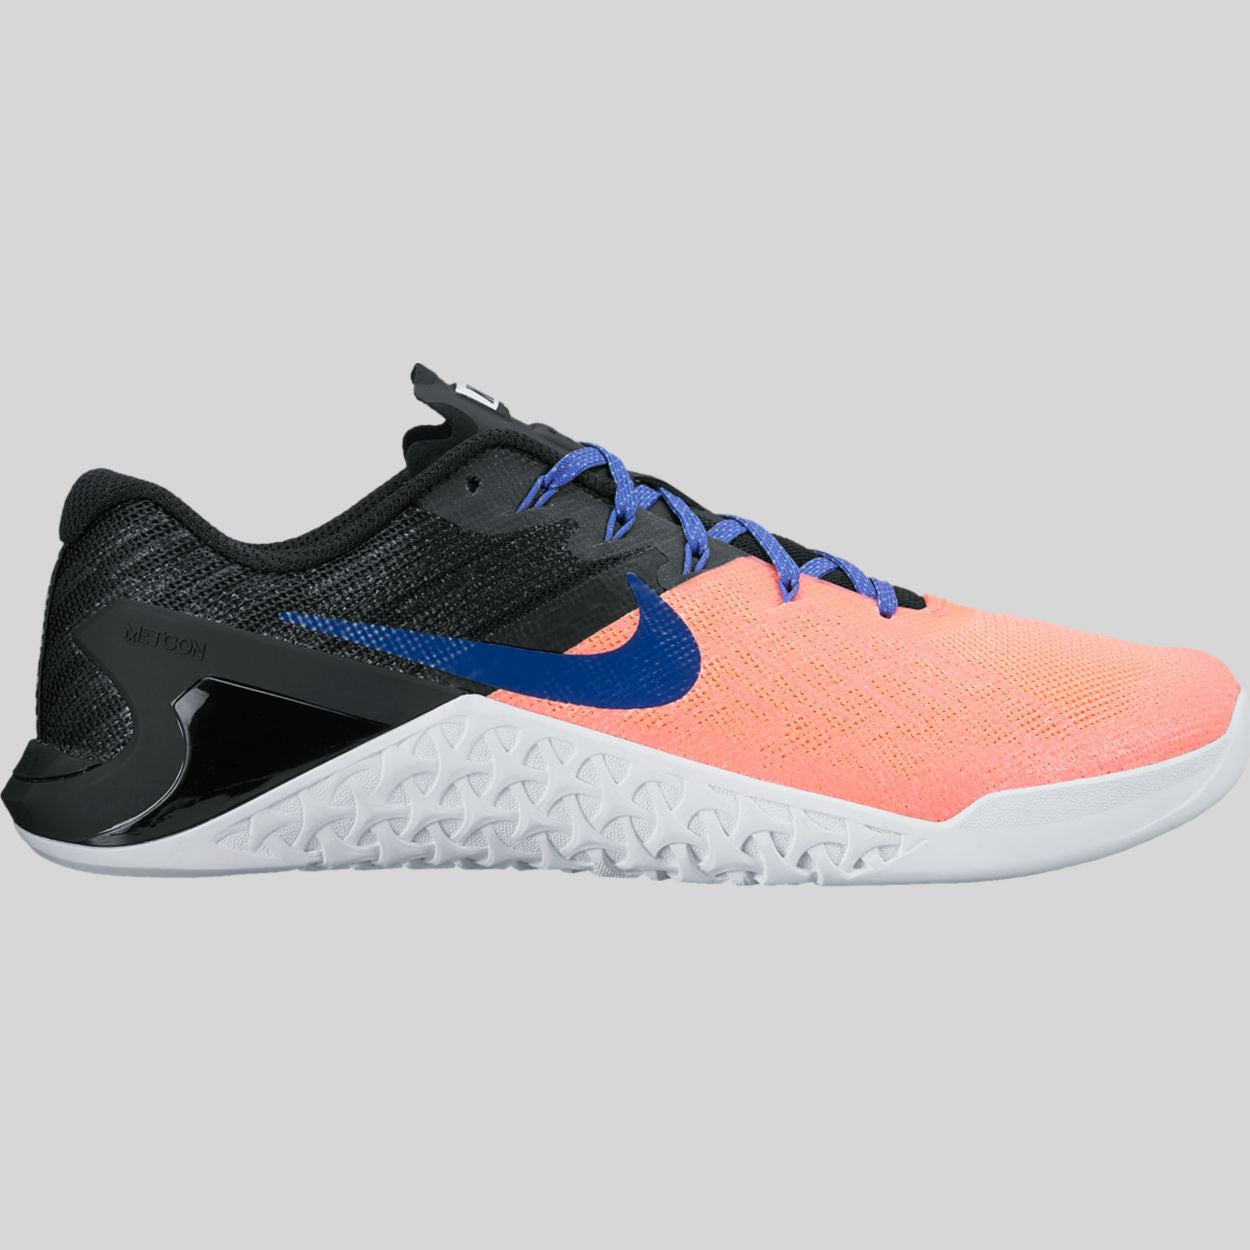 the latest 164c0 aca4e Nike Wmns Metcon 3 Lava Glow Paramount Blue Black (849807-600)